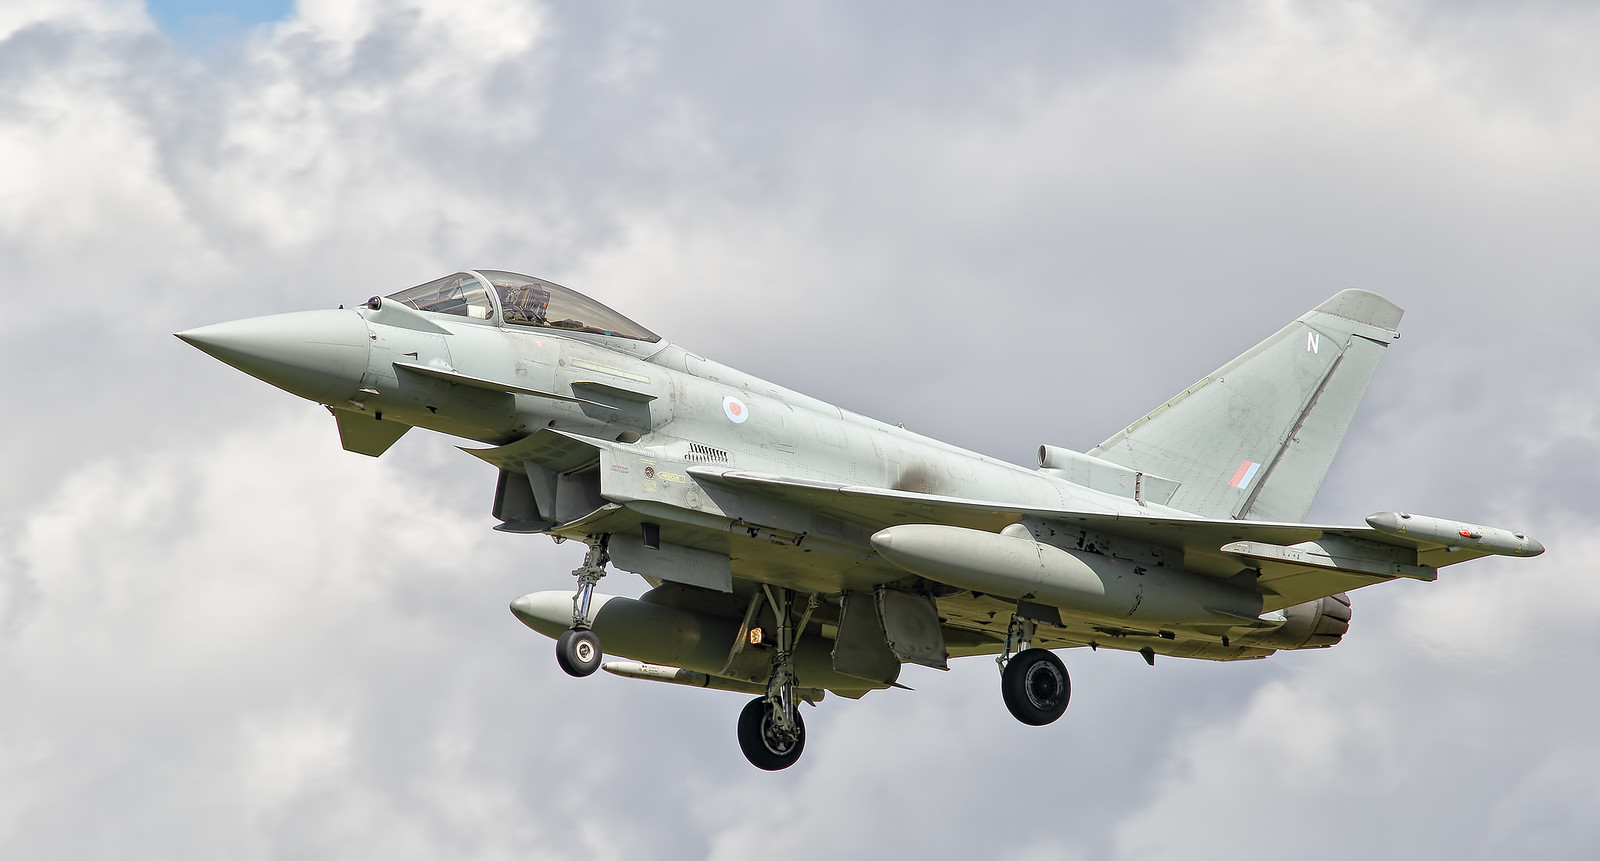 UNCERTAINTY OVER THE FUTURE OF THE BRITISH MILITARY